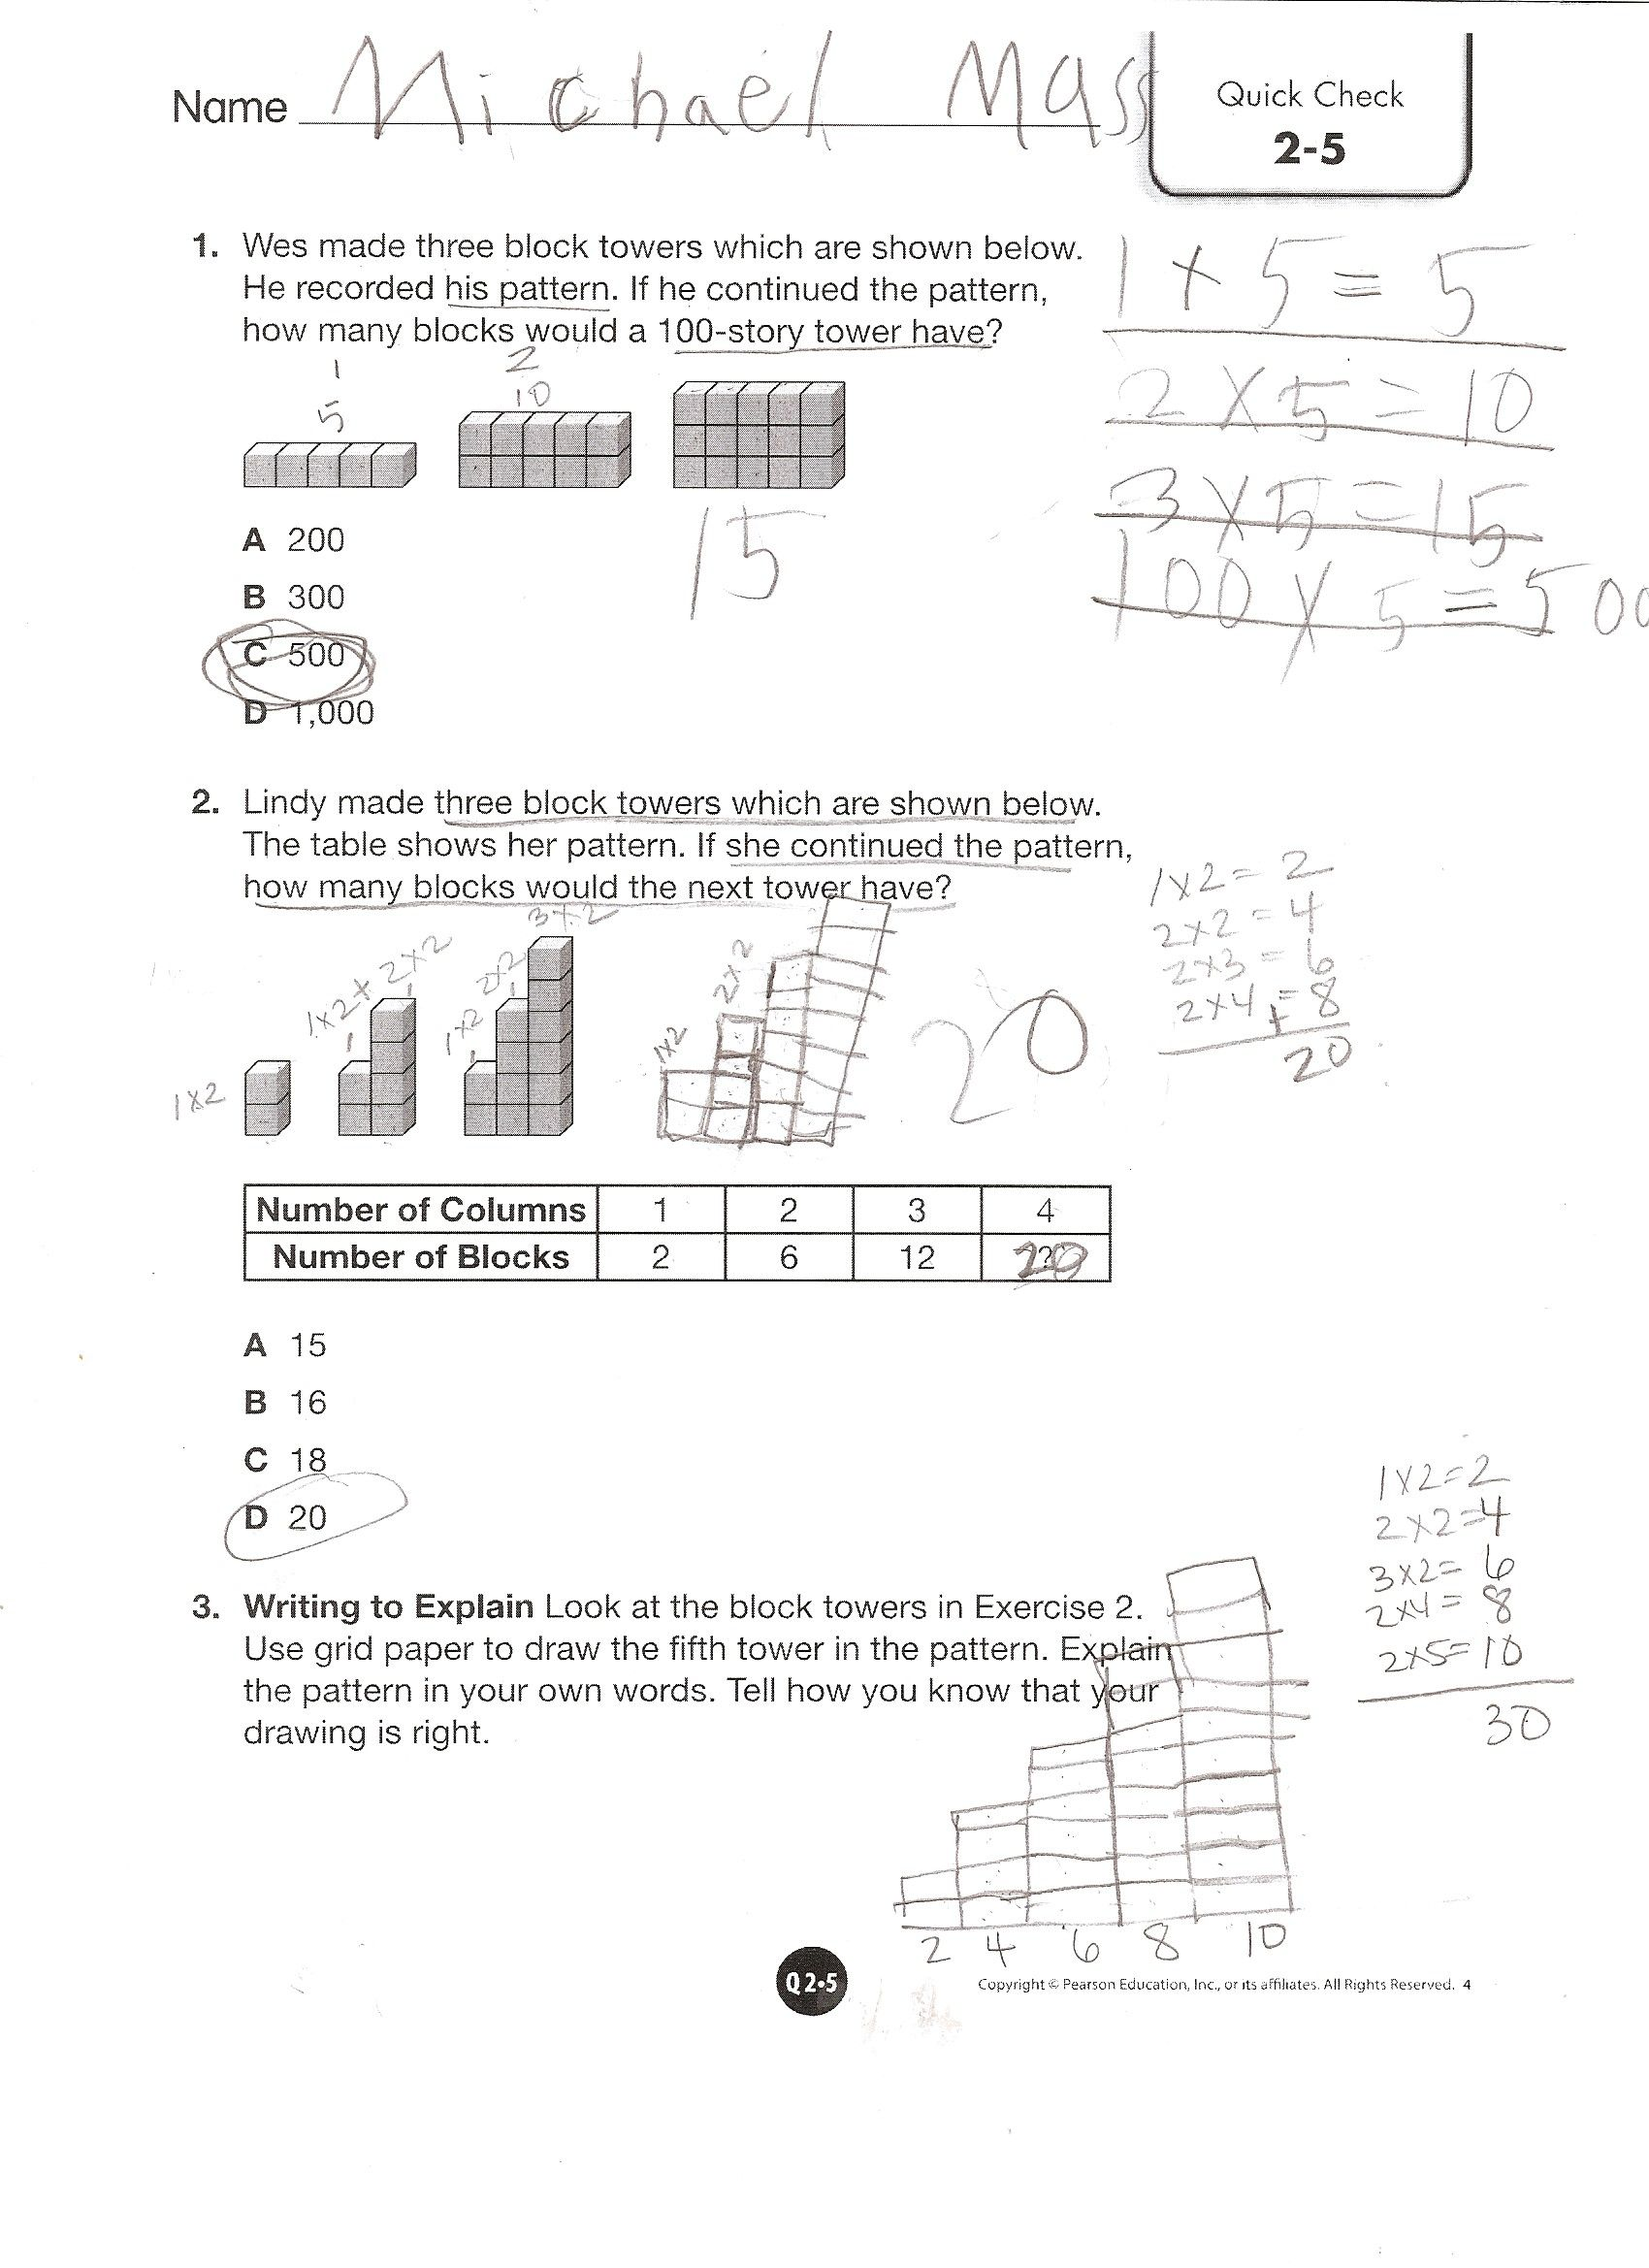 Pearson Math Worksheet 9 7 For Fifth Grade